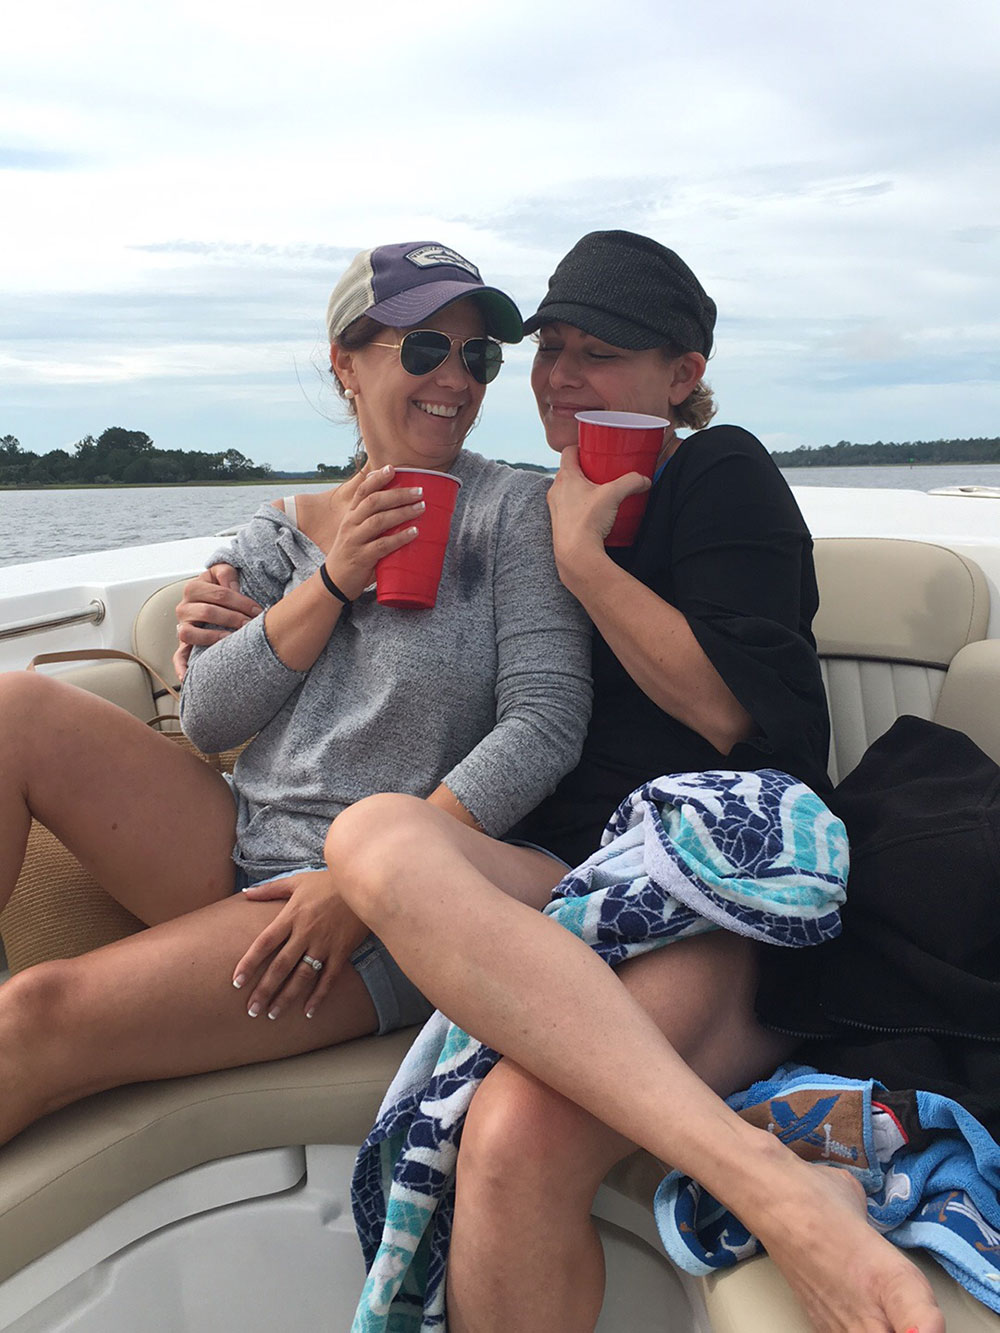 Two women with red plastic drink cups sitting together on a boat